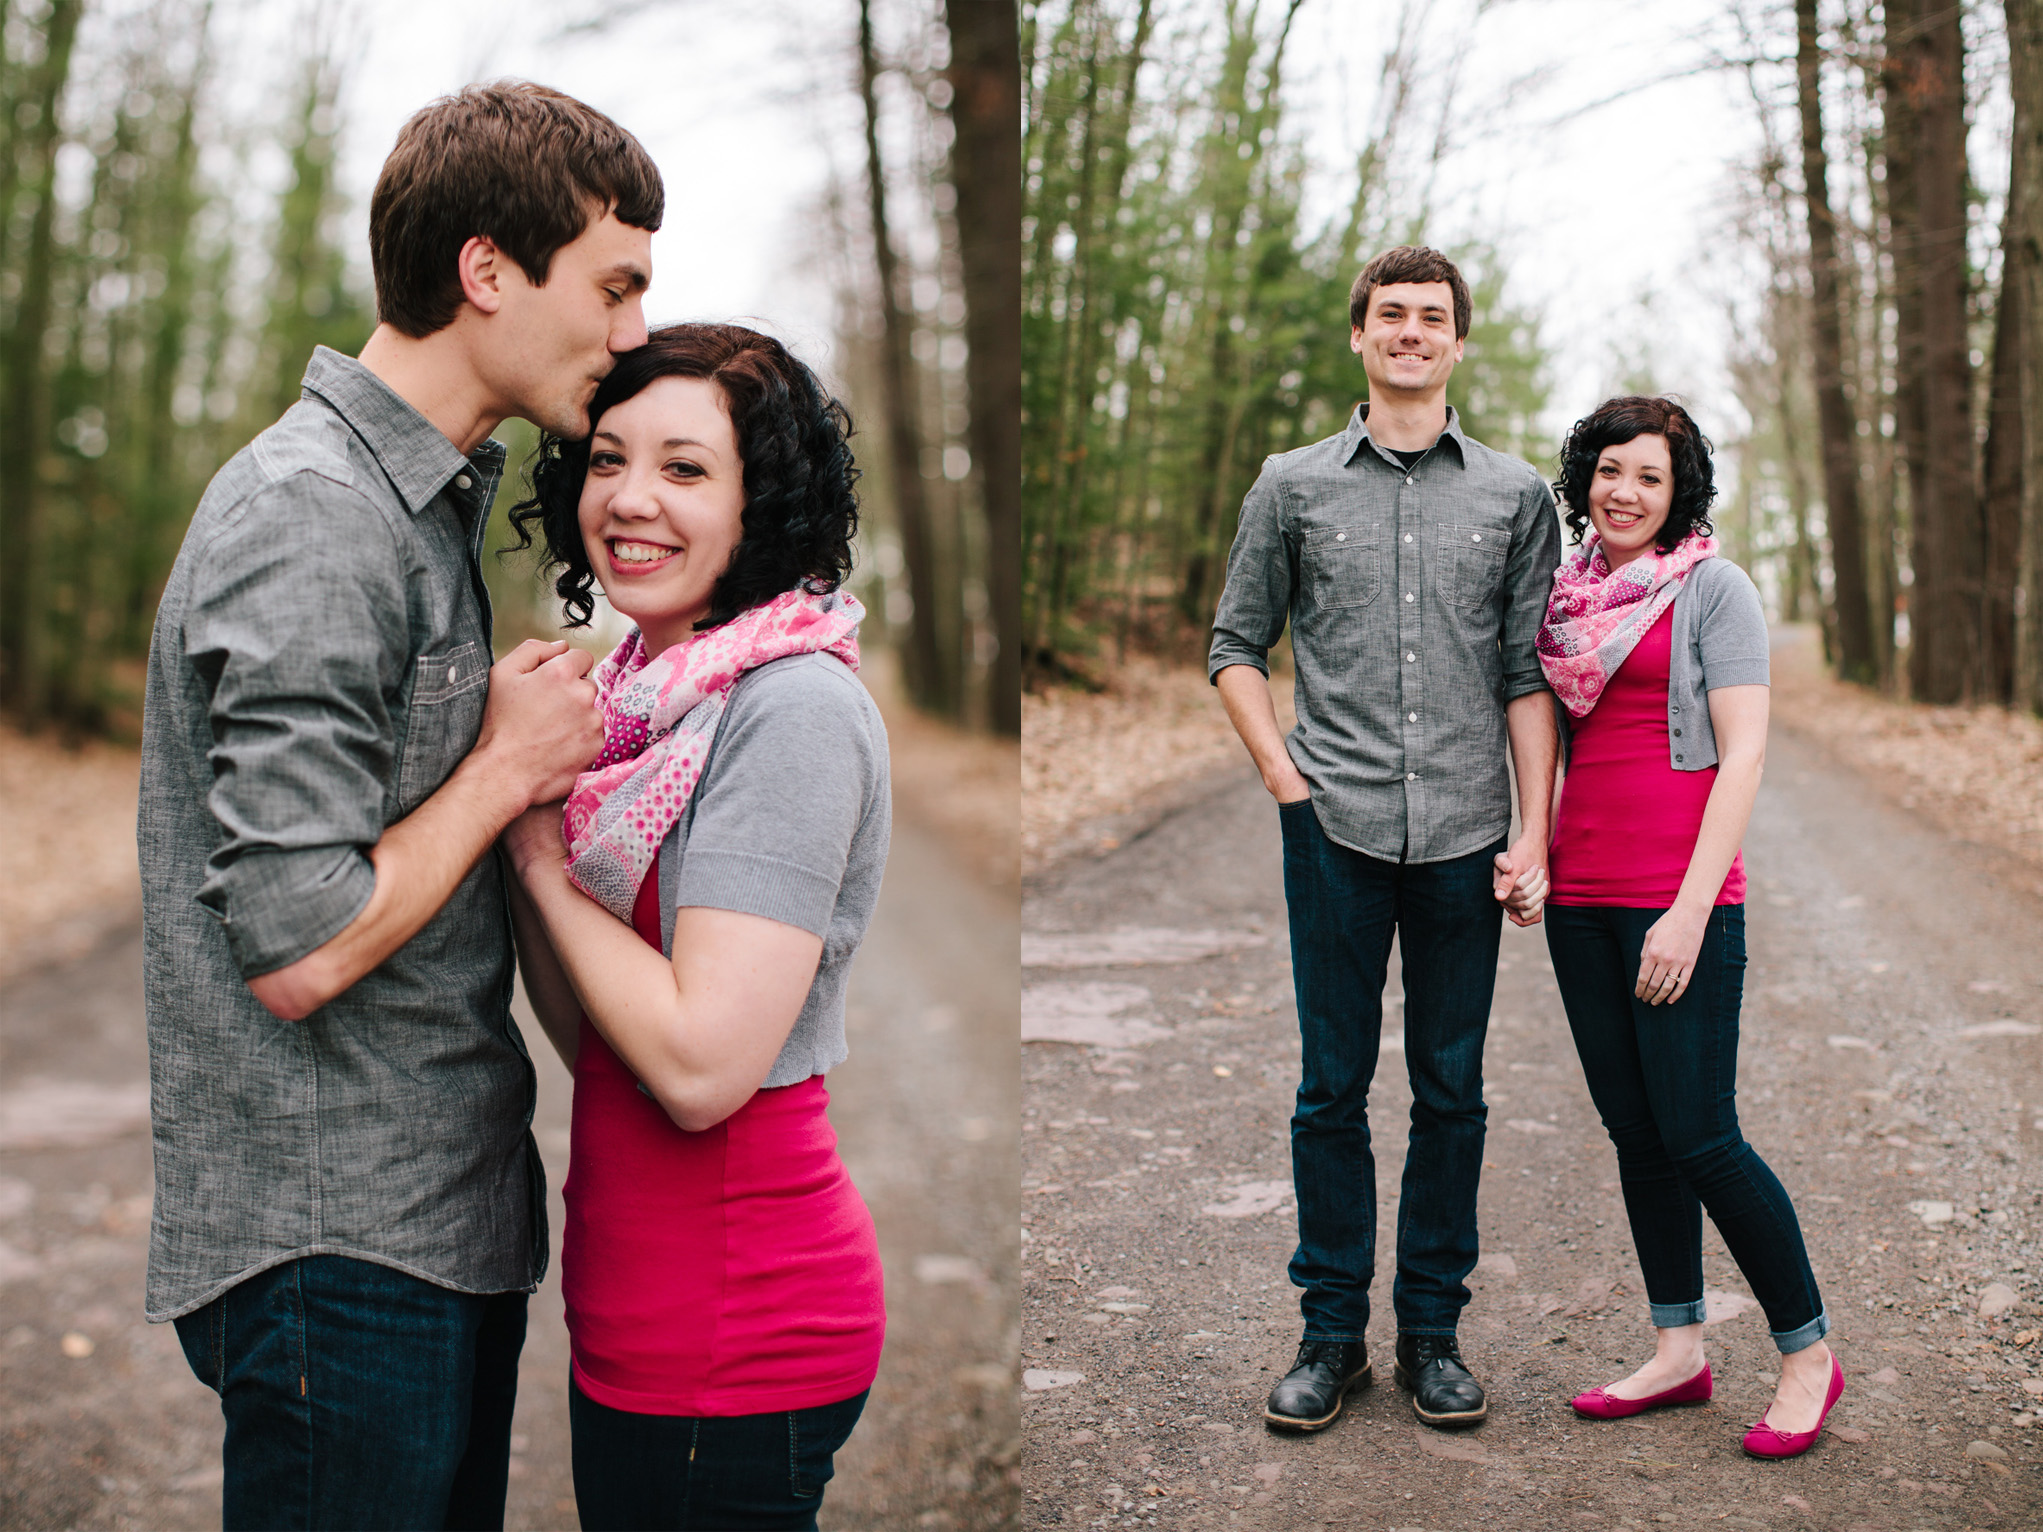 conroy_family_tierney_cyanne_photography_blog_3.jpg